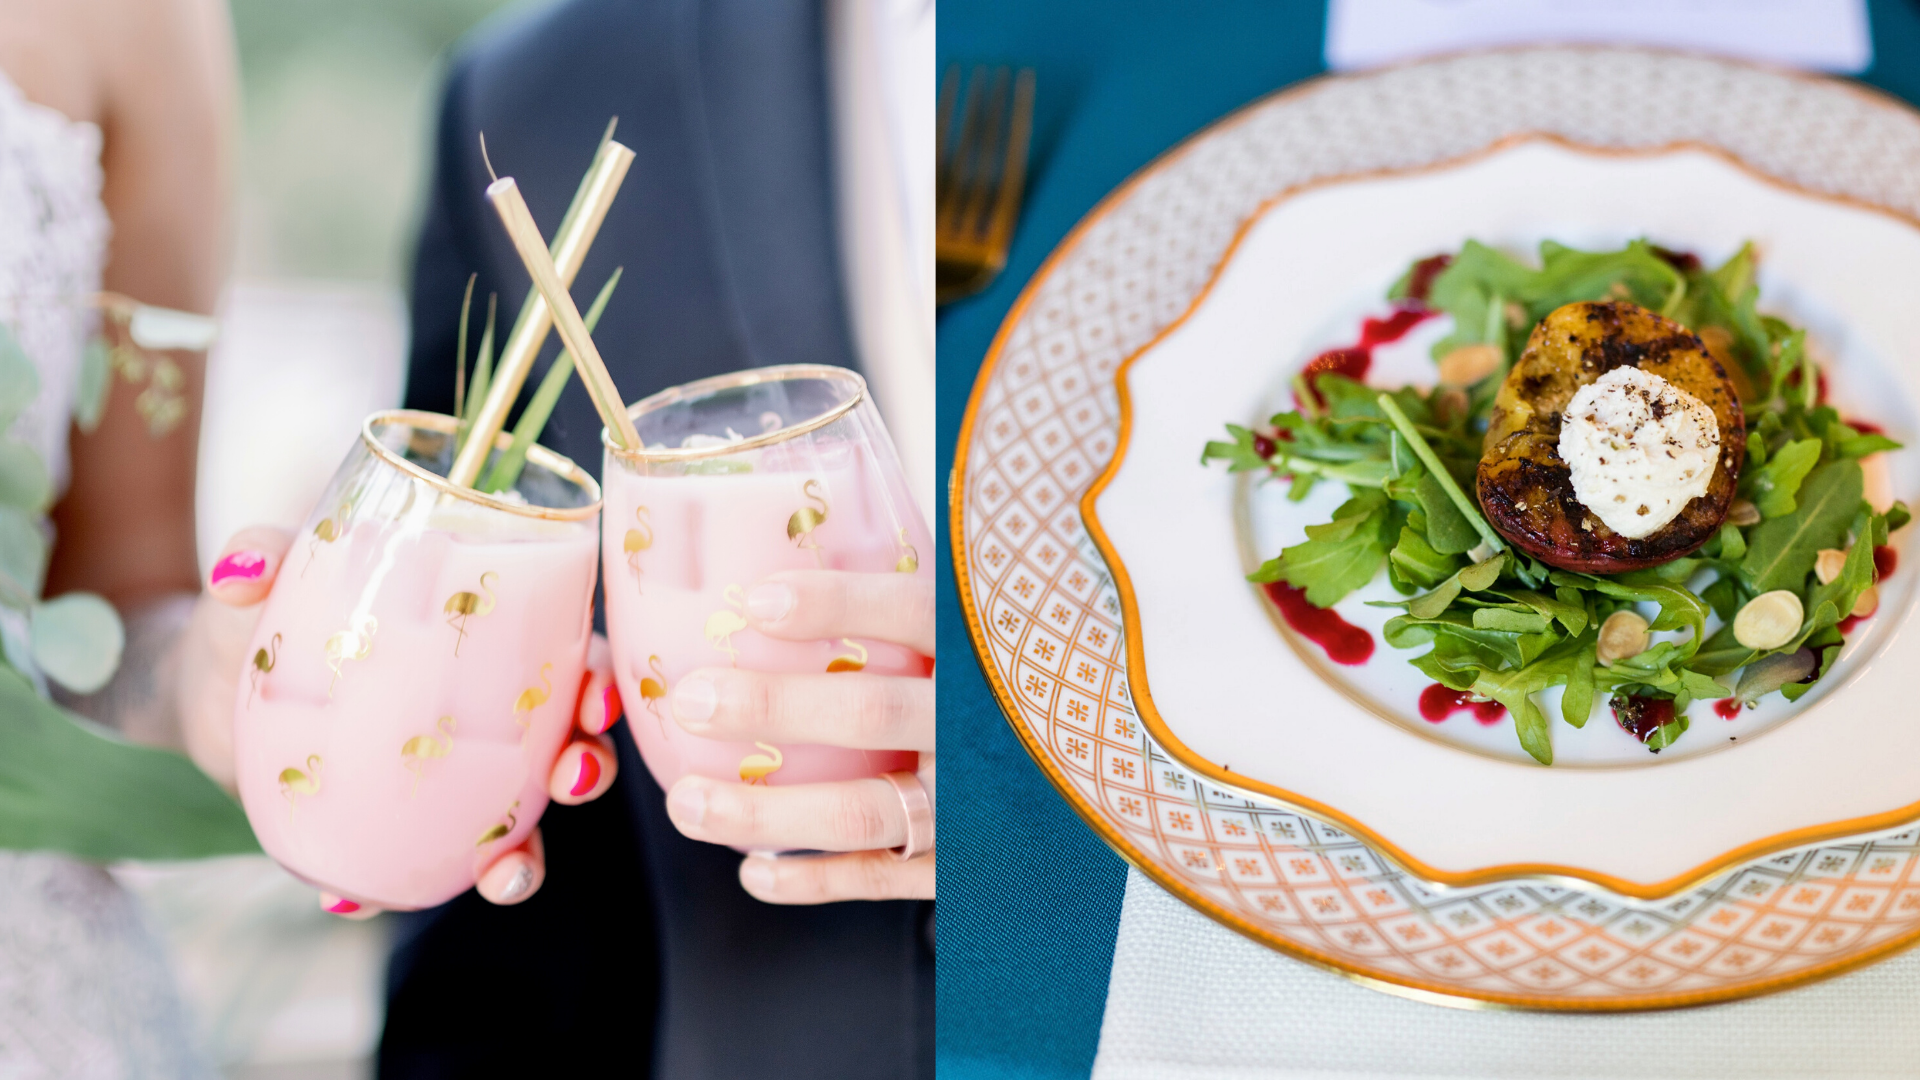 Photo of drinks and salad available at Root Cellar Catering Co.